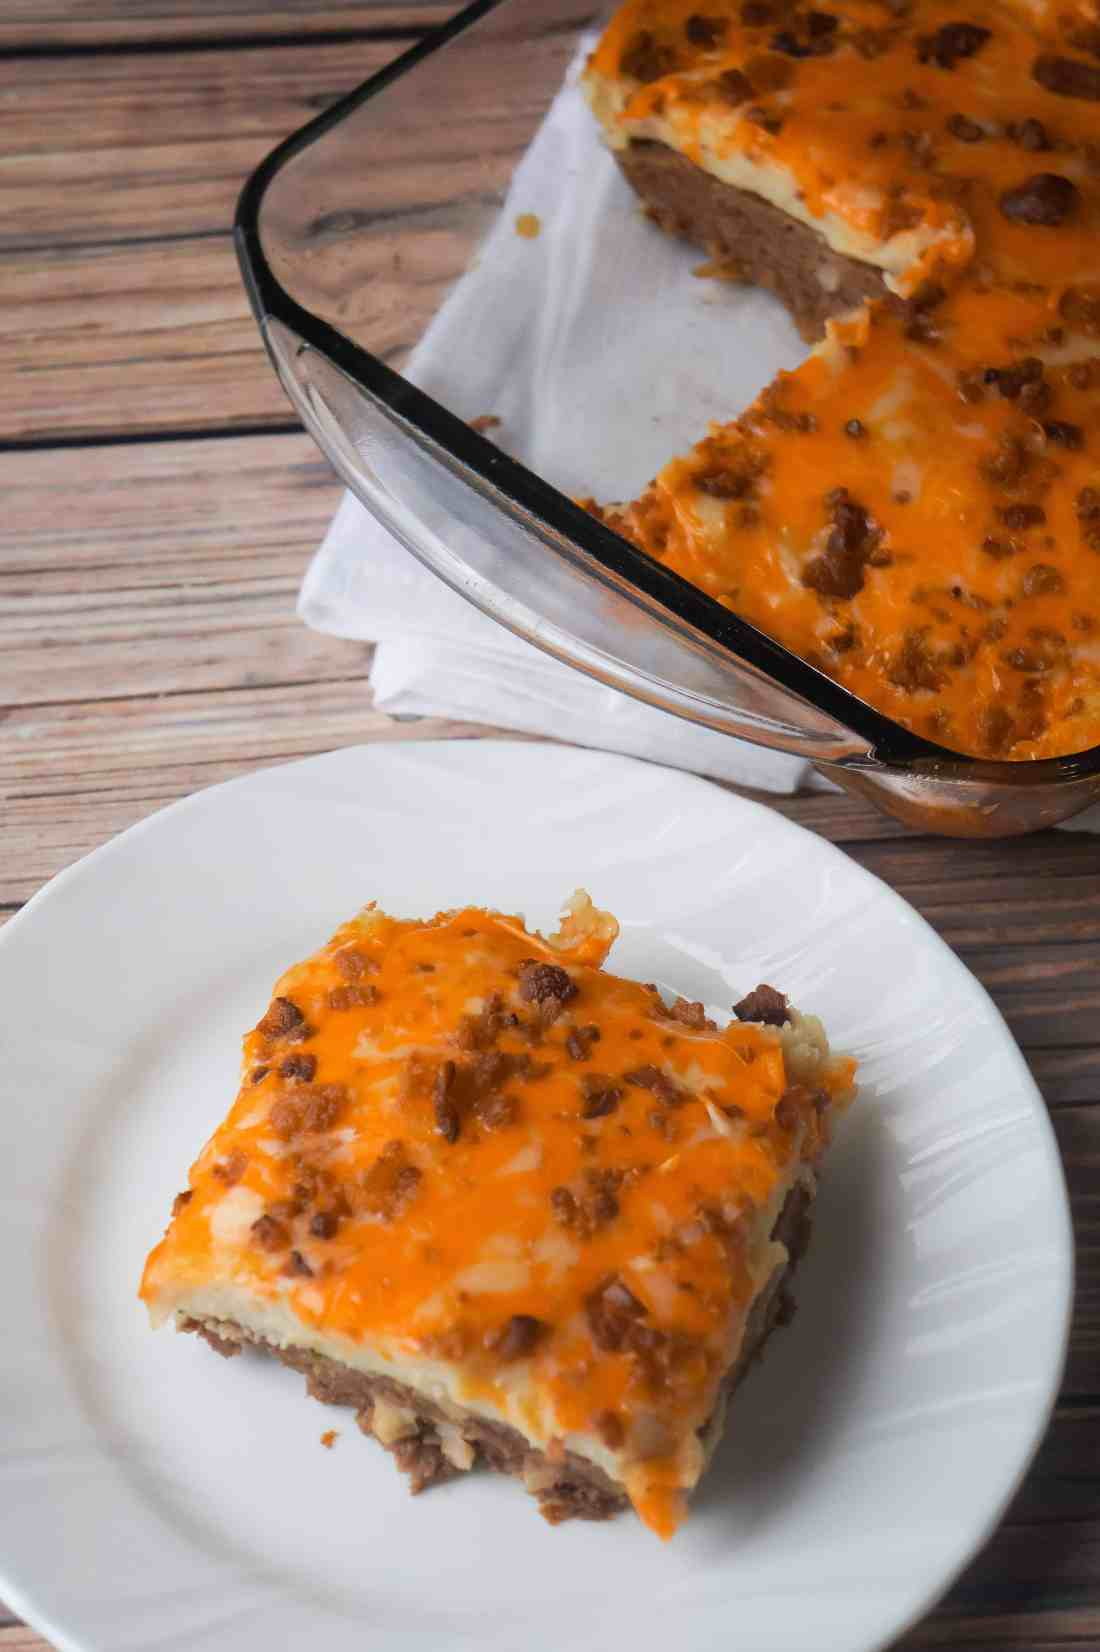 Easy casserole recipe using ground beef. Easy dinner recipe.